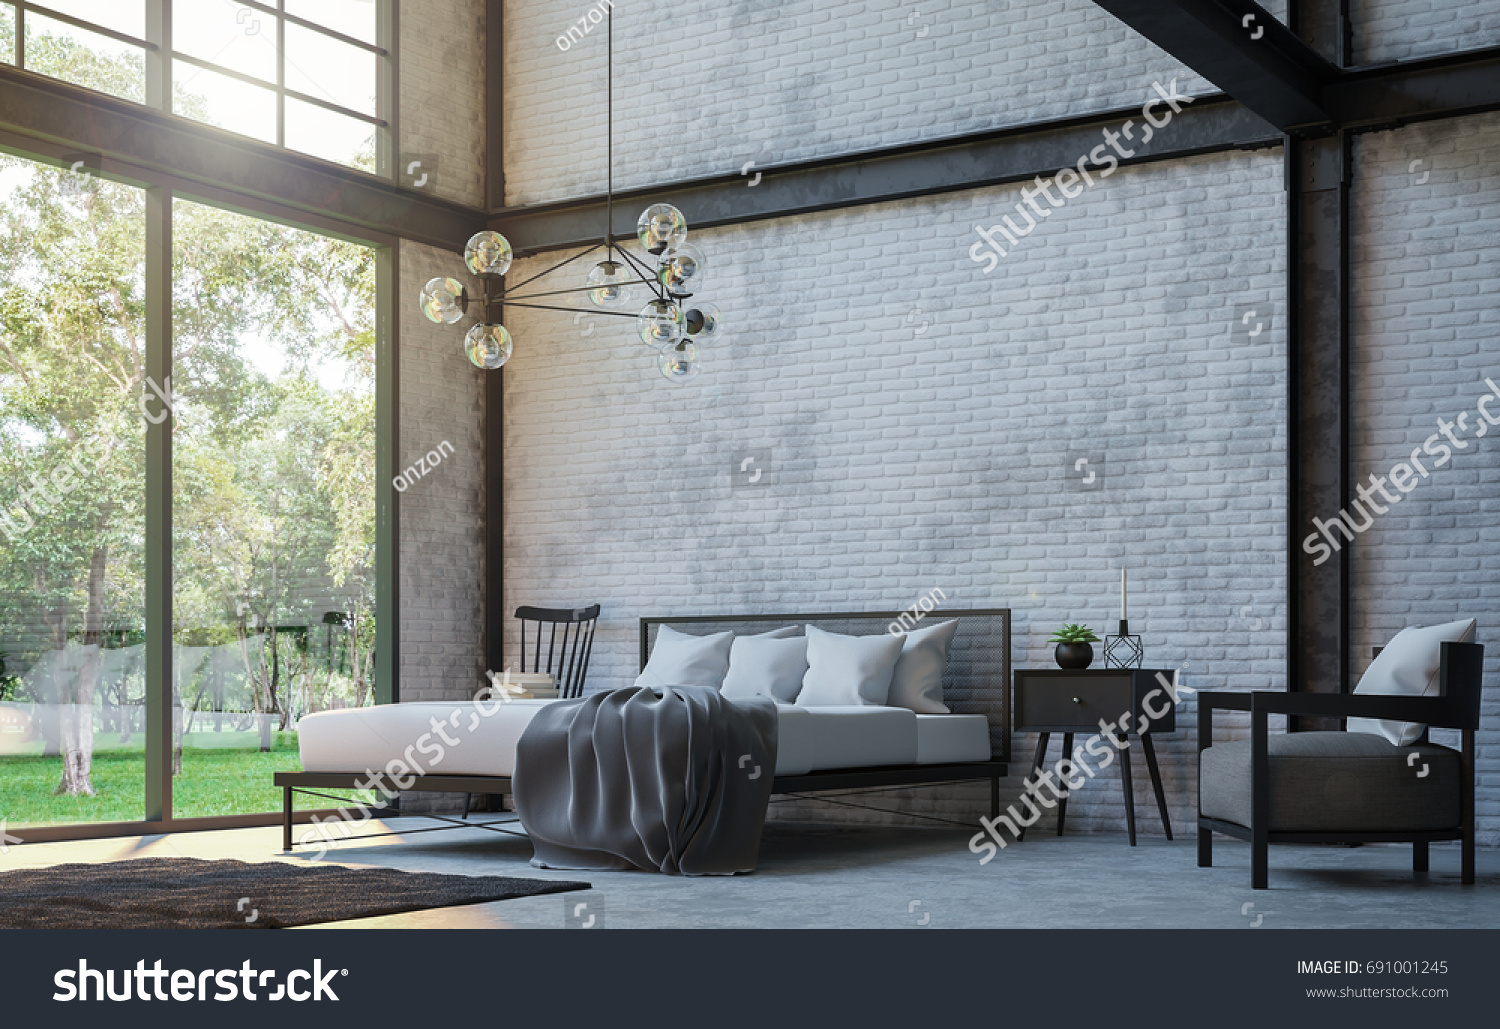 Loft Style Bedroom 3d Rendering Image.There Are White Brick Wall,polished  Concrete Floor